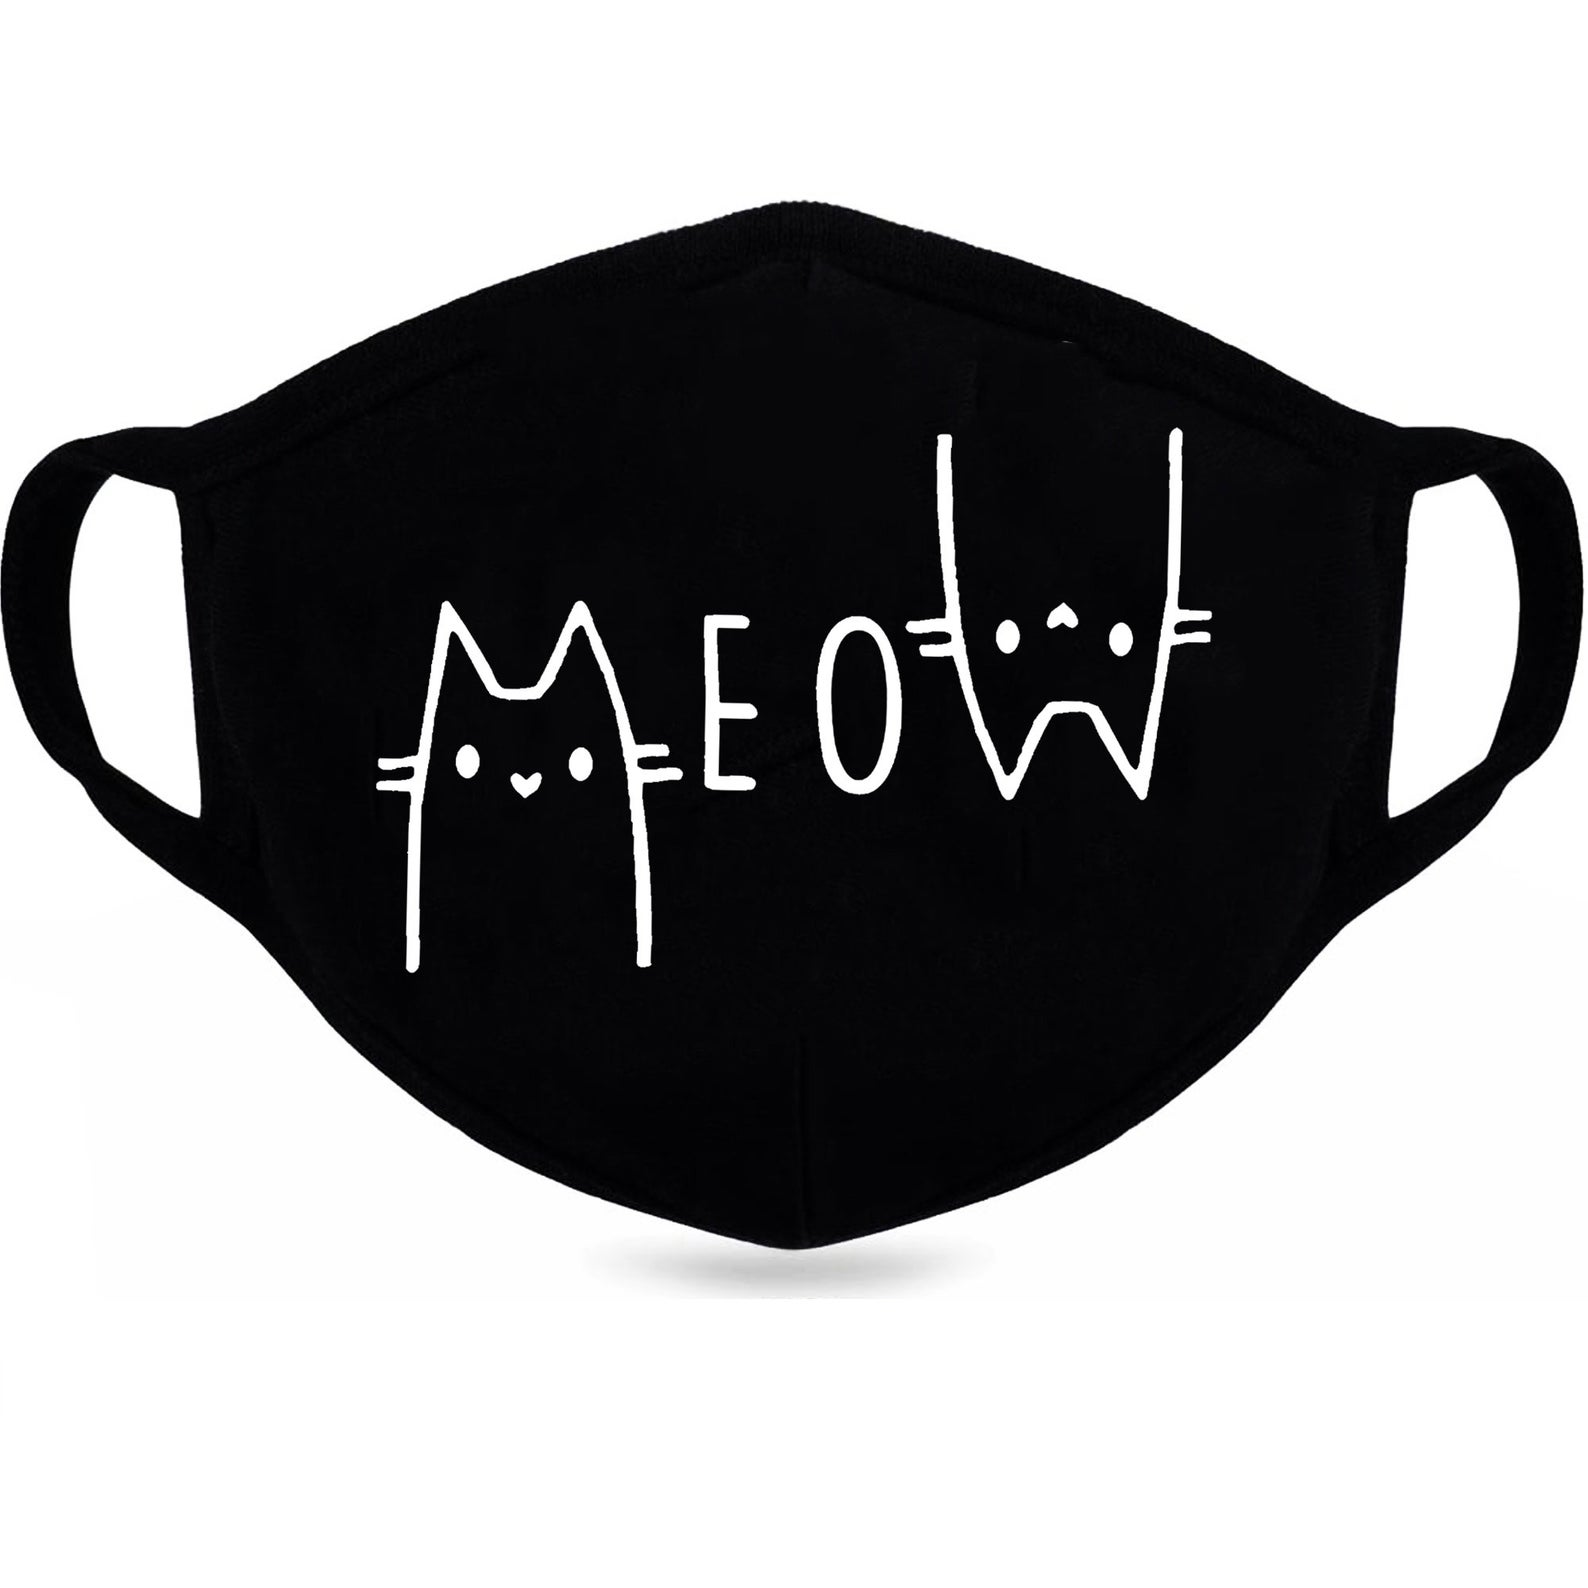 """Black cat mask that says """"MEOW"""""""